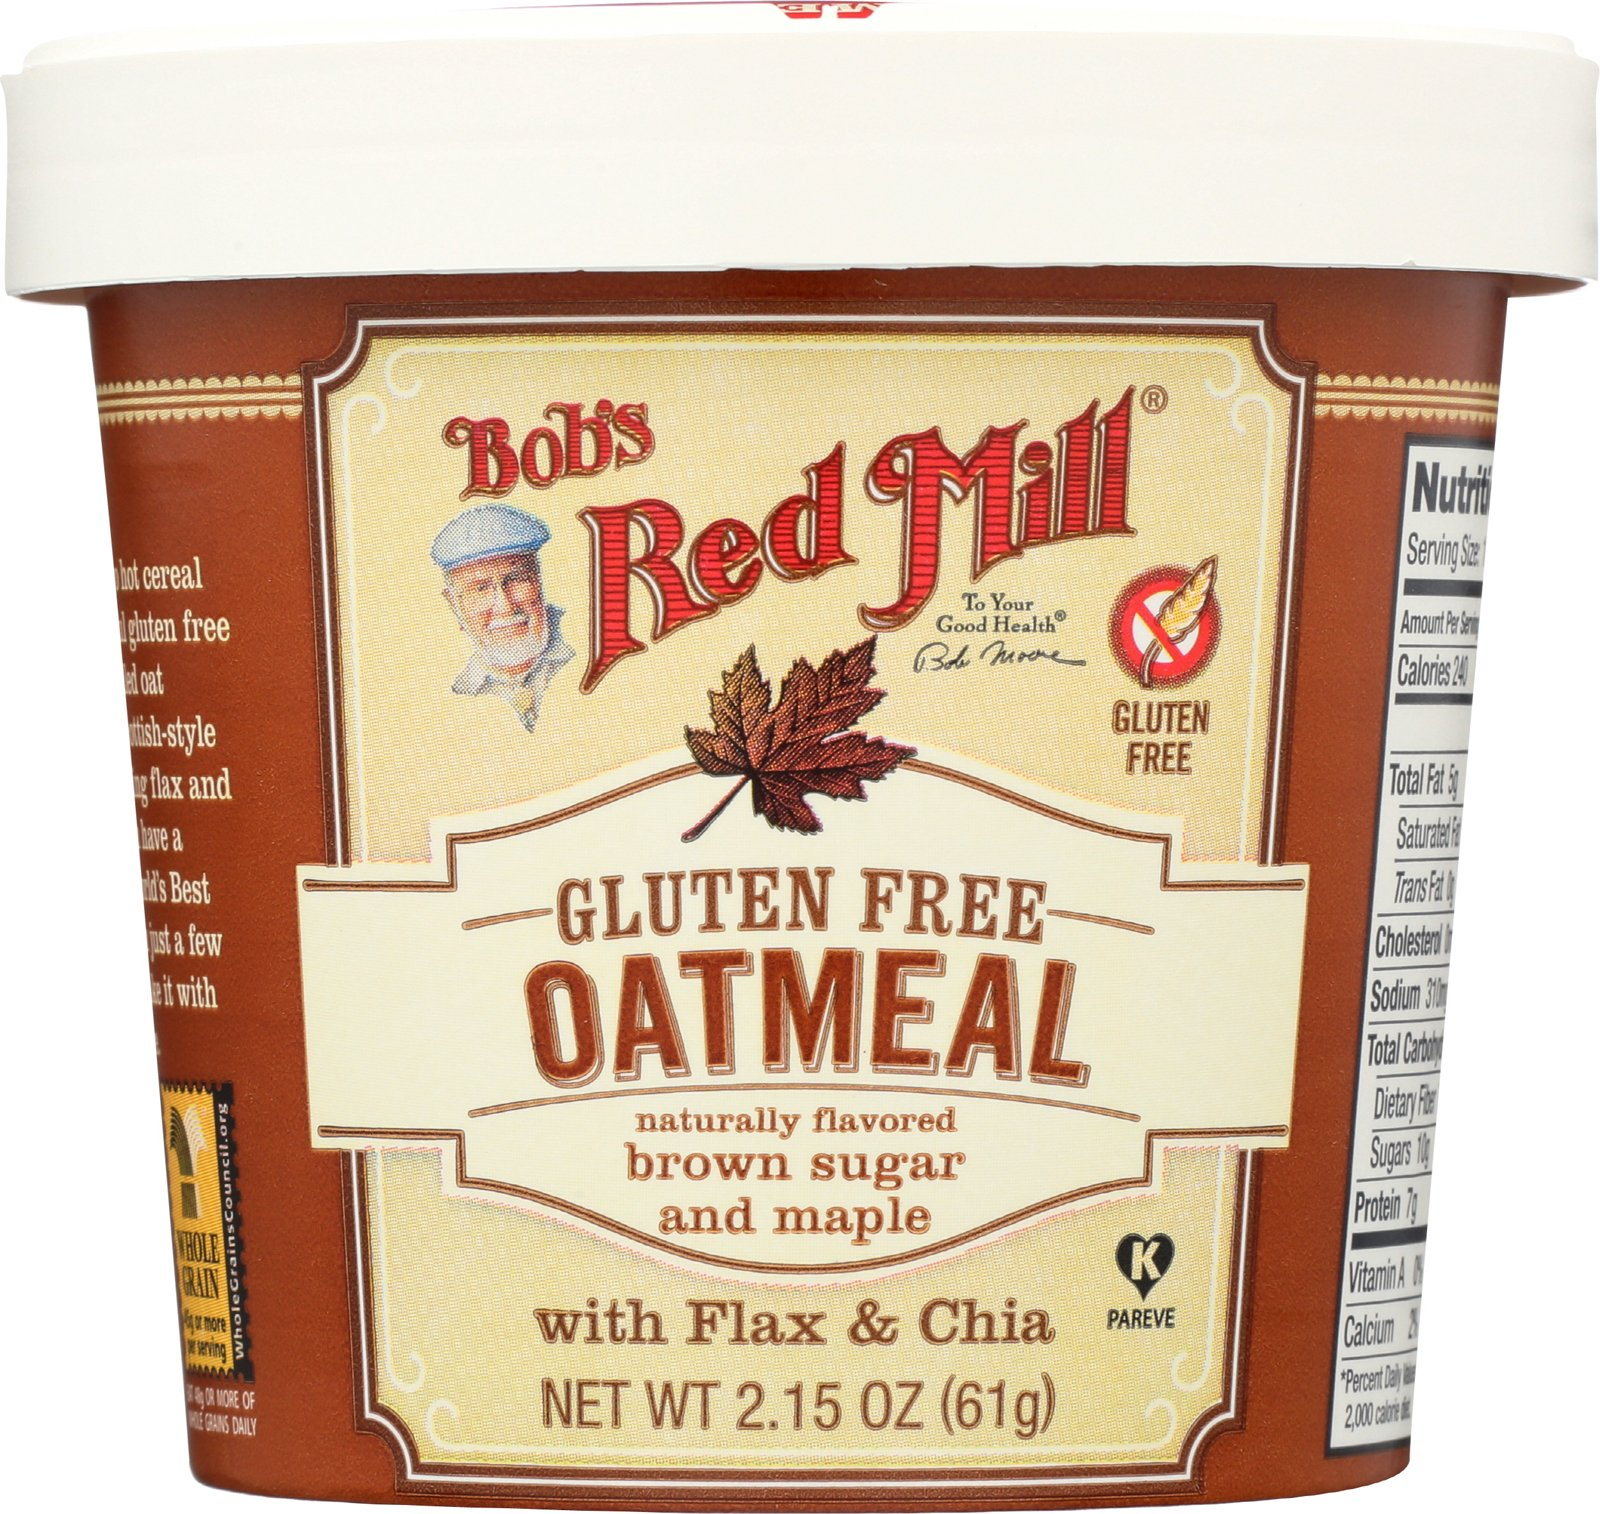 Bob's Red Mill Gluten-Free Oatmeal Cup, Brown Sugar & Maple, 61g (Pack of 12)